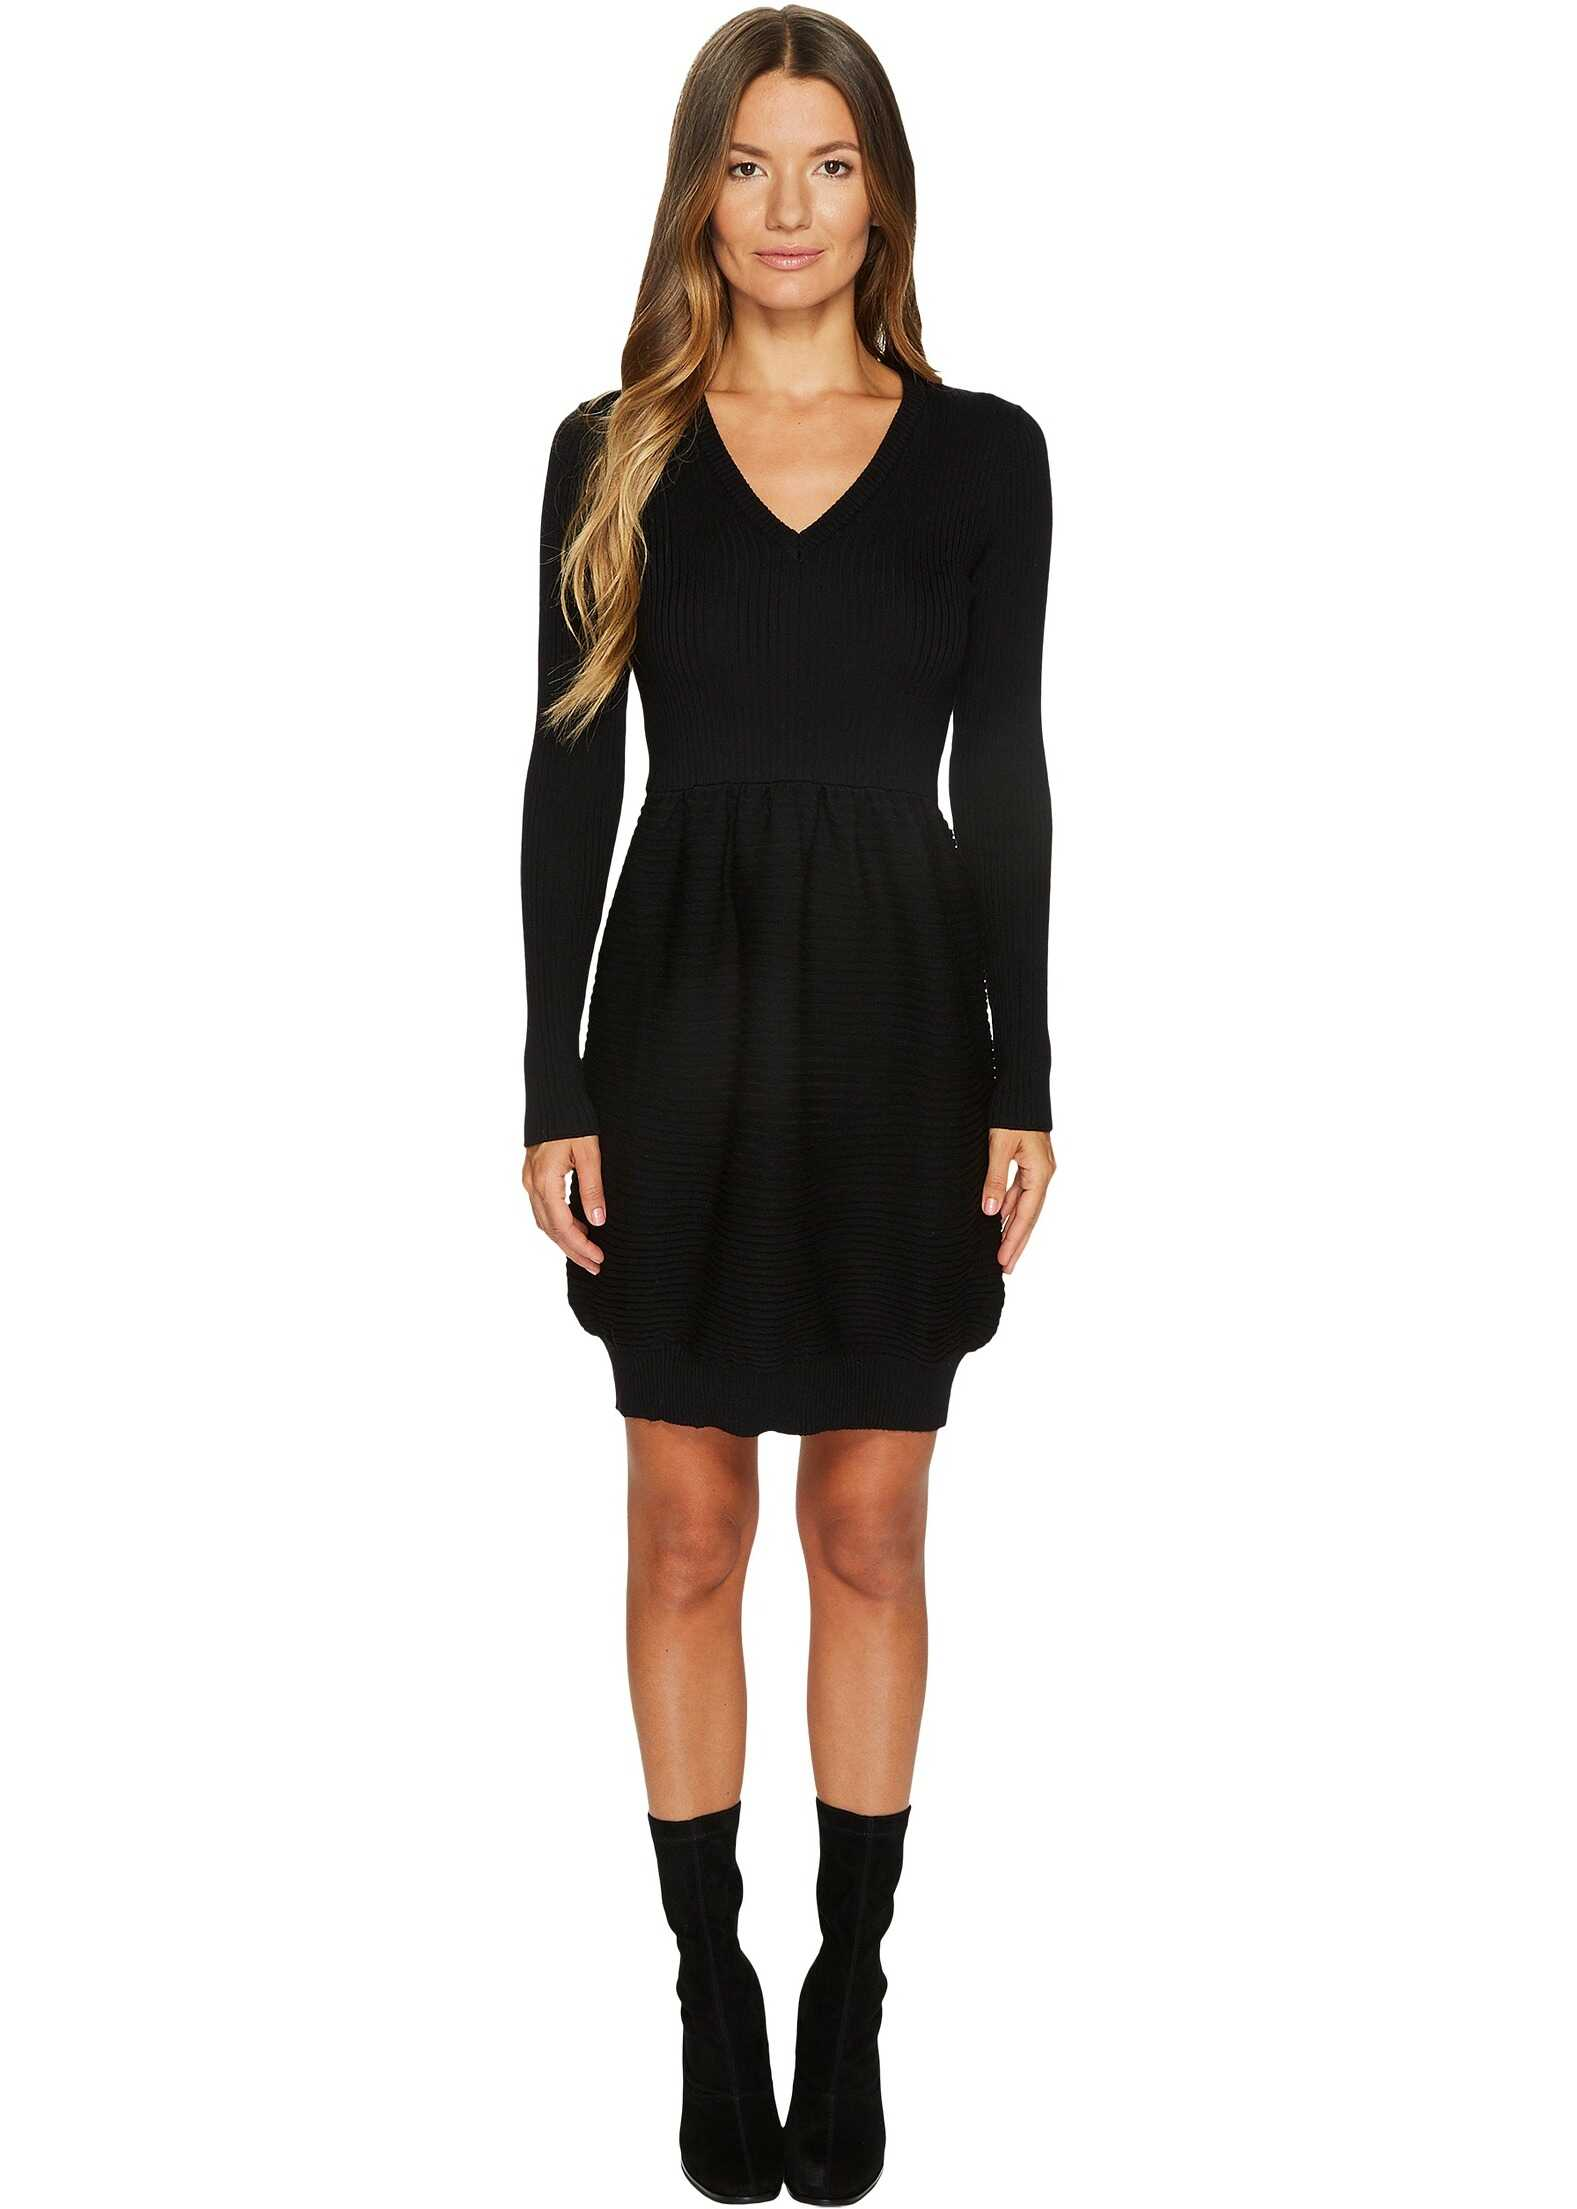 LOVE Moschino Knit Long Sleeve Dress Black